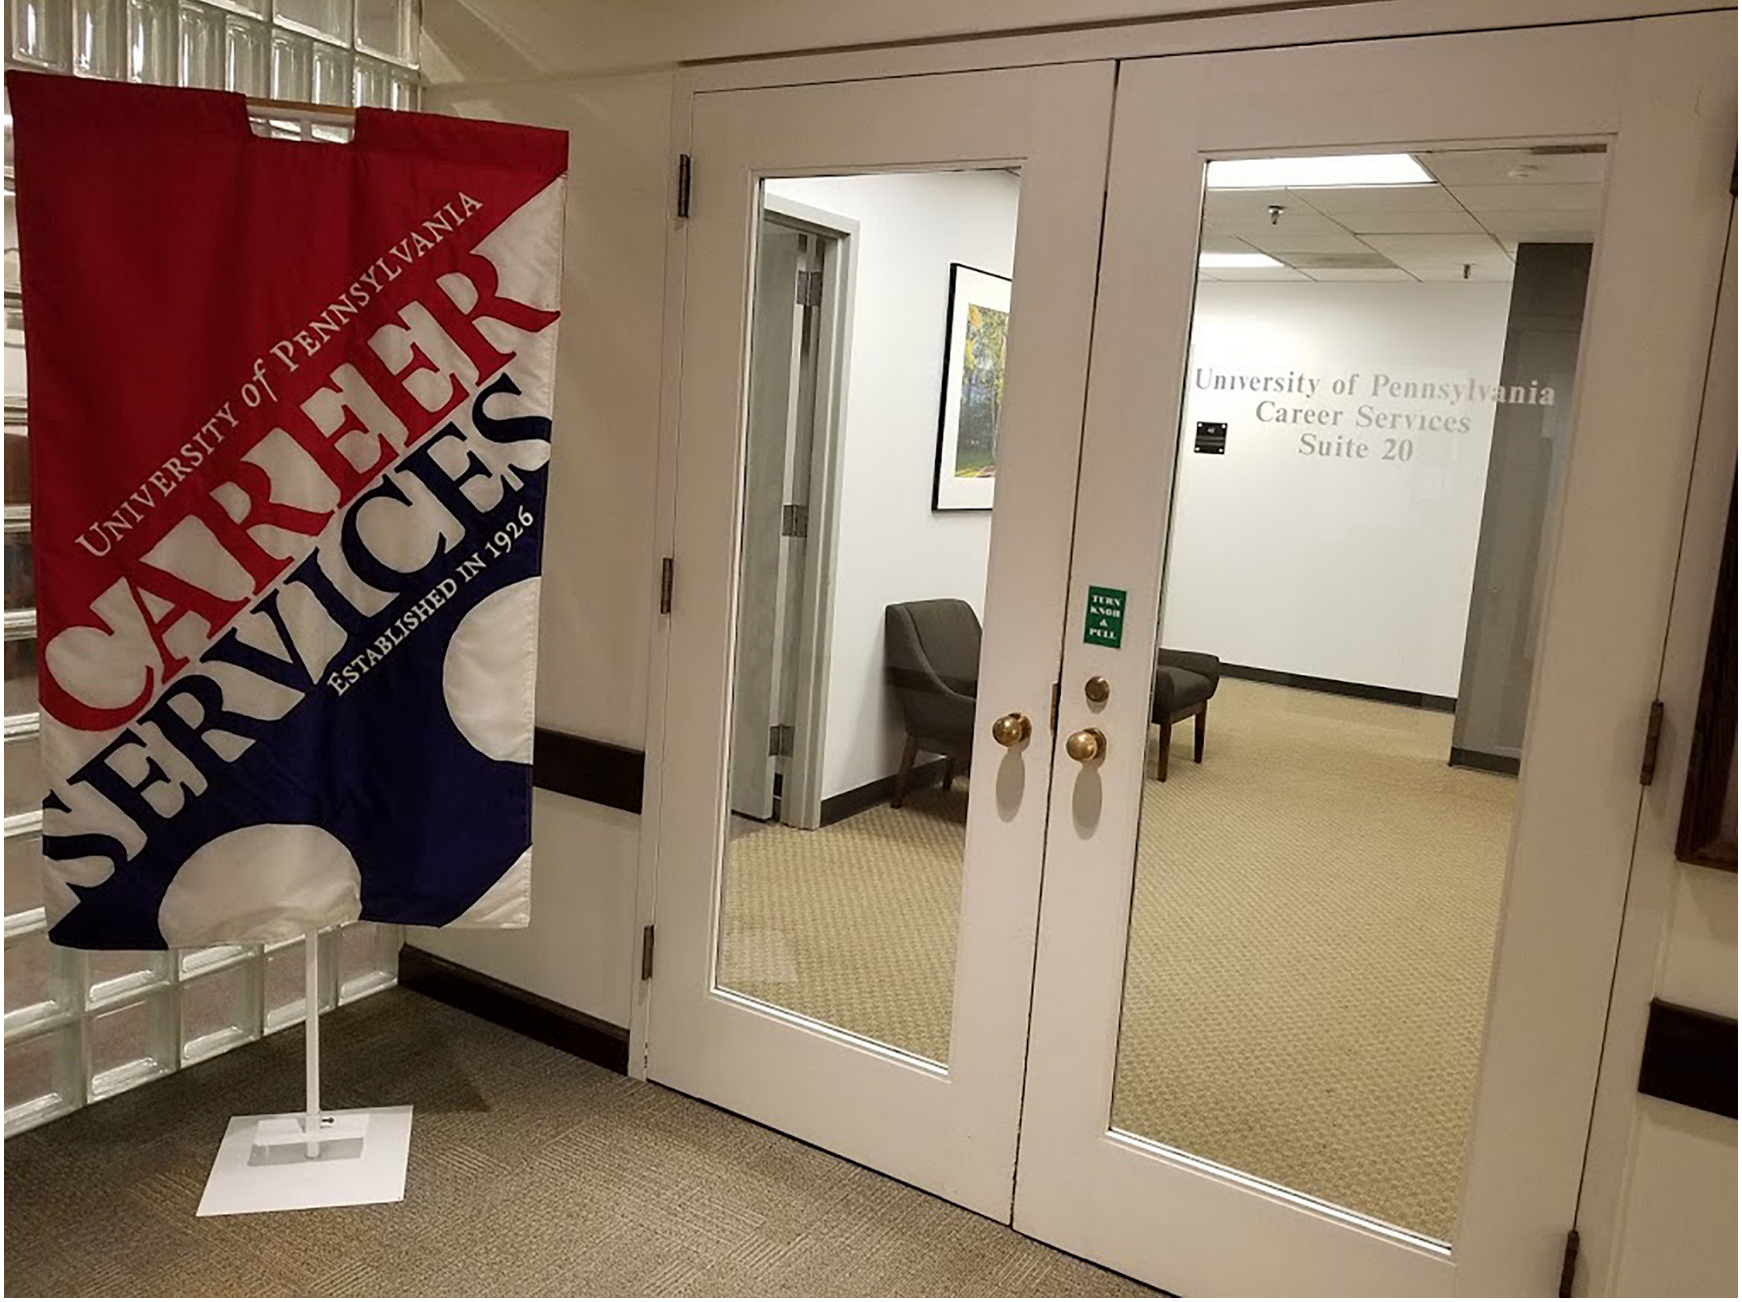 Front doors of Career Services office